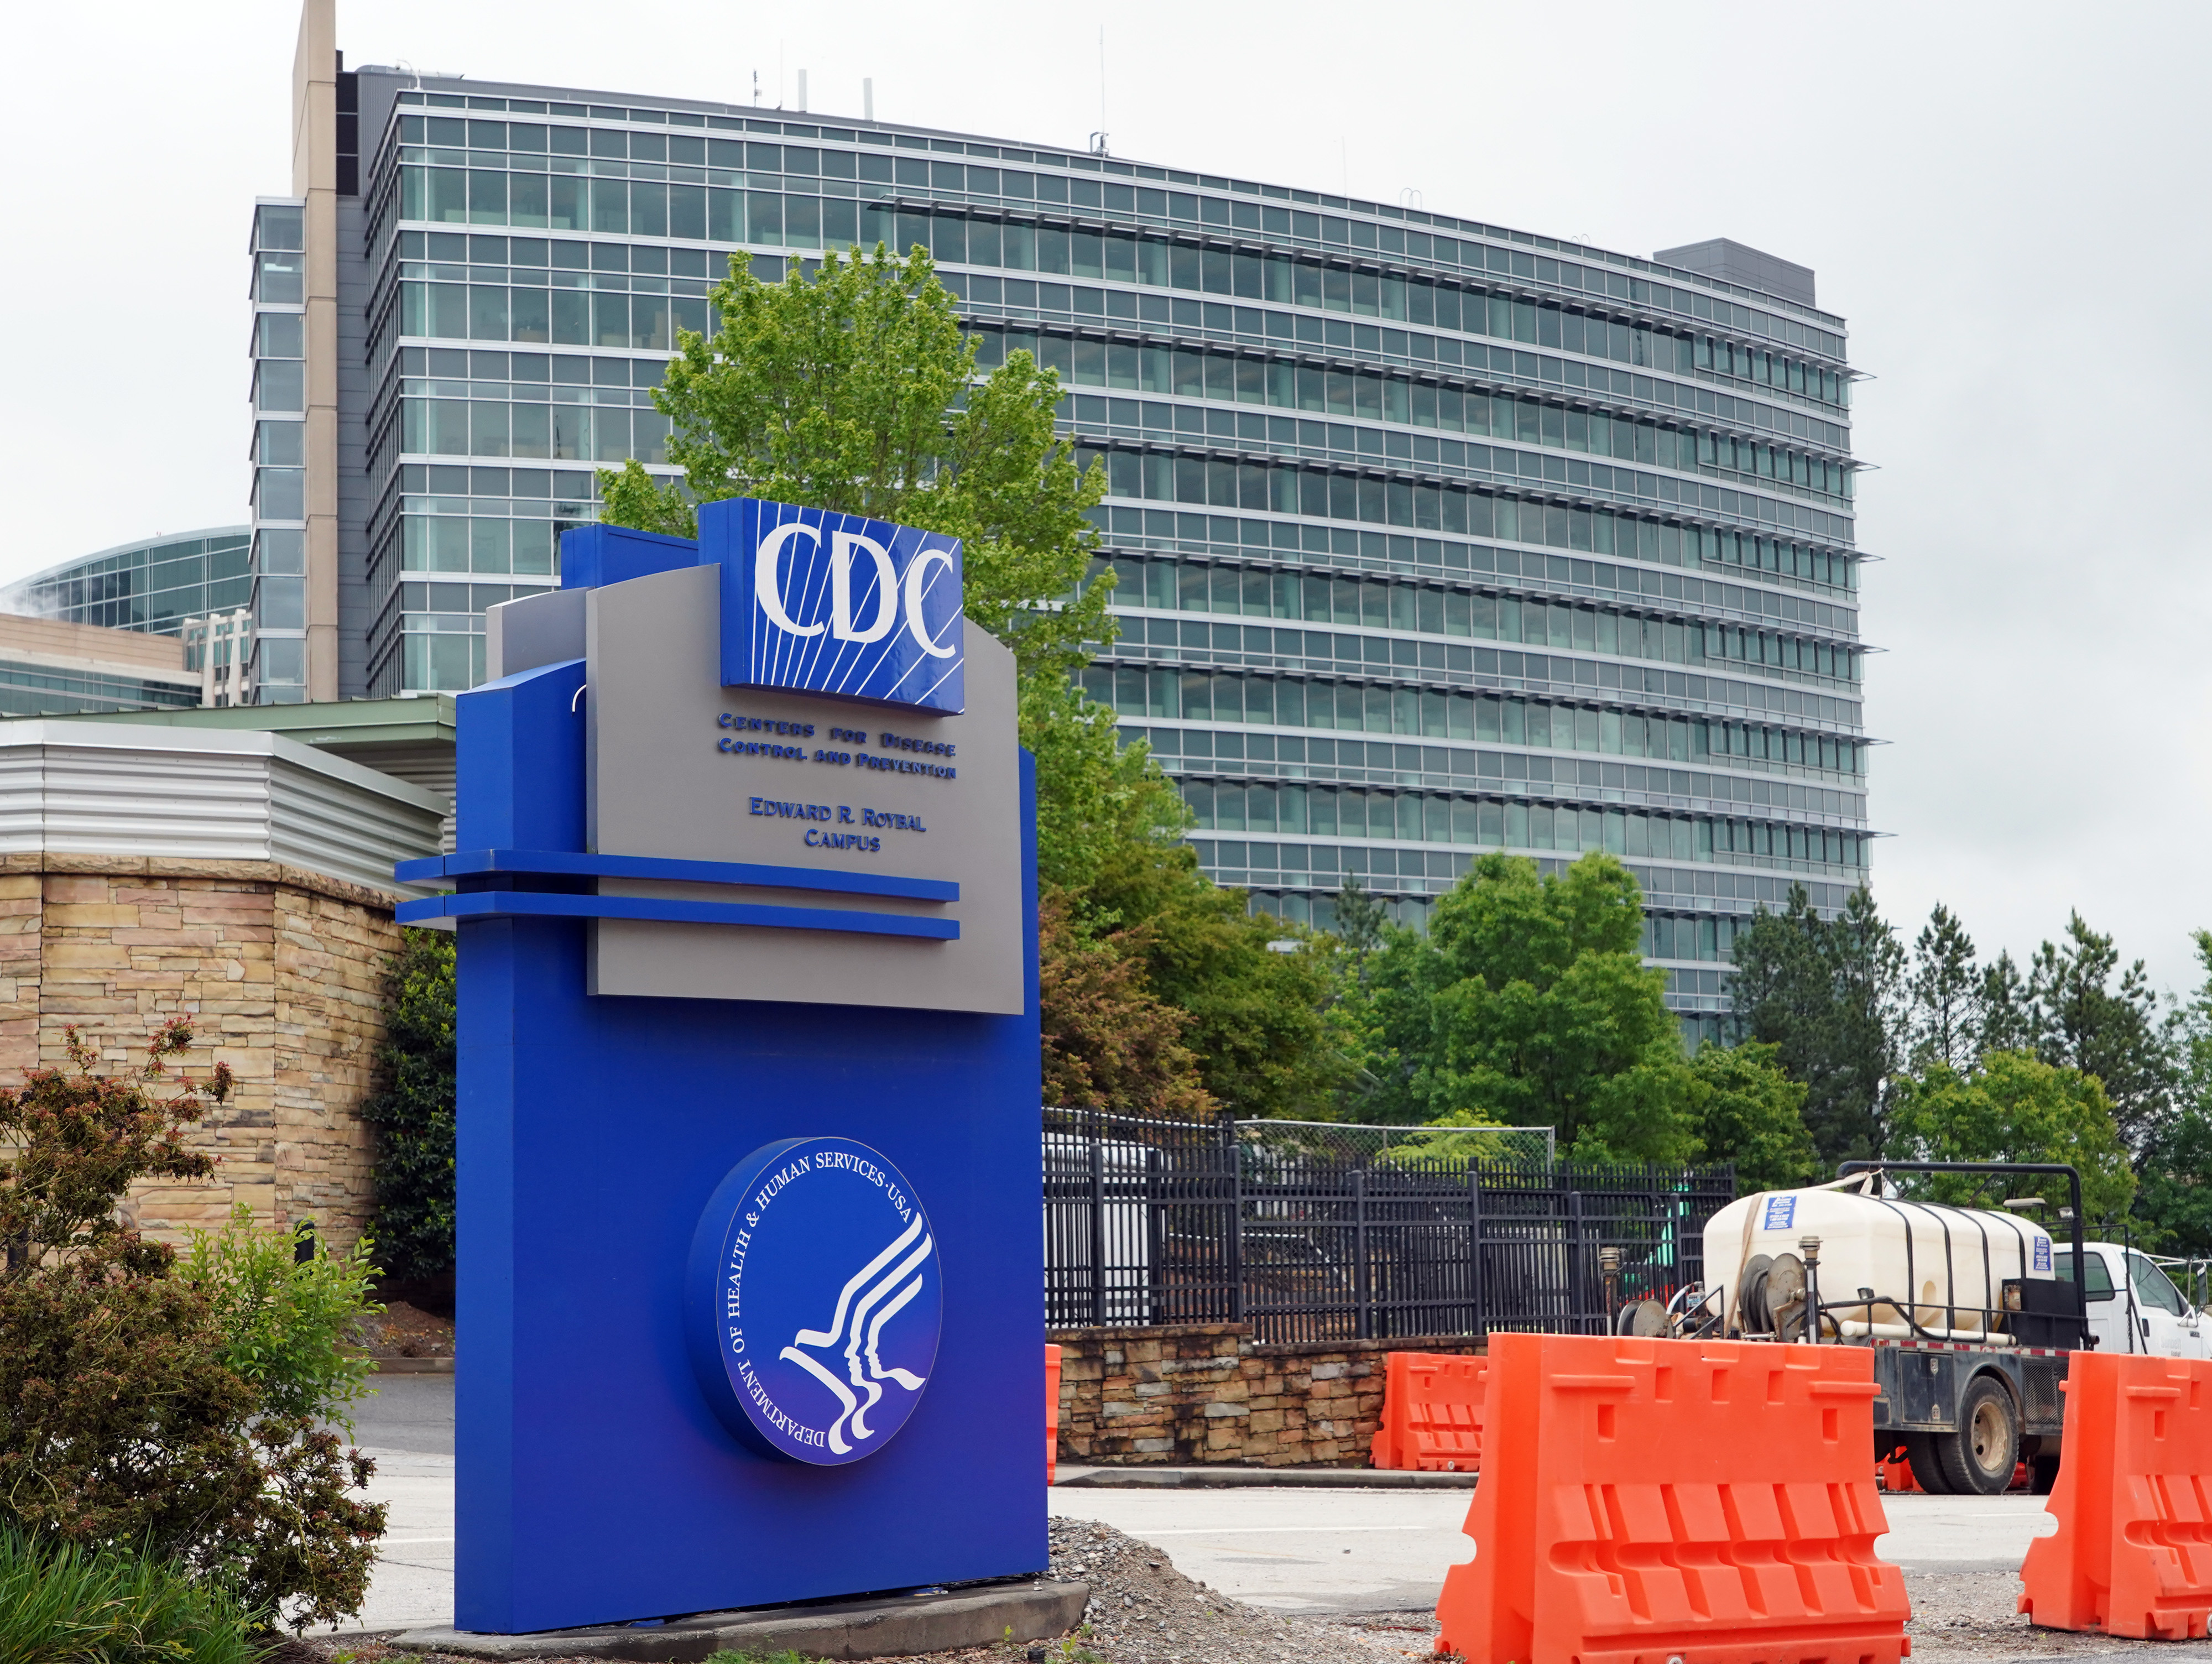 The Edward R. Roybal campus of the Centers for Disease Control and Prevention in Atlanta is seen on April 23.